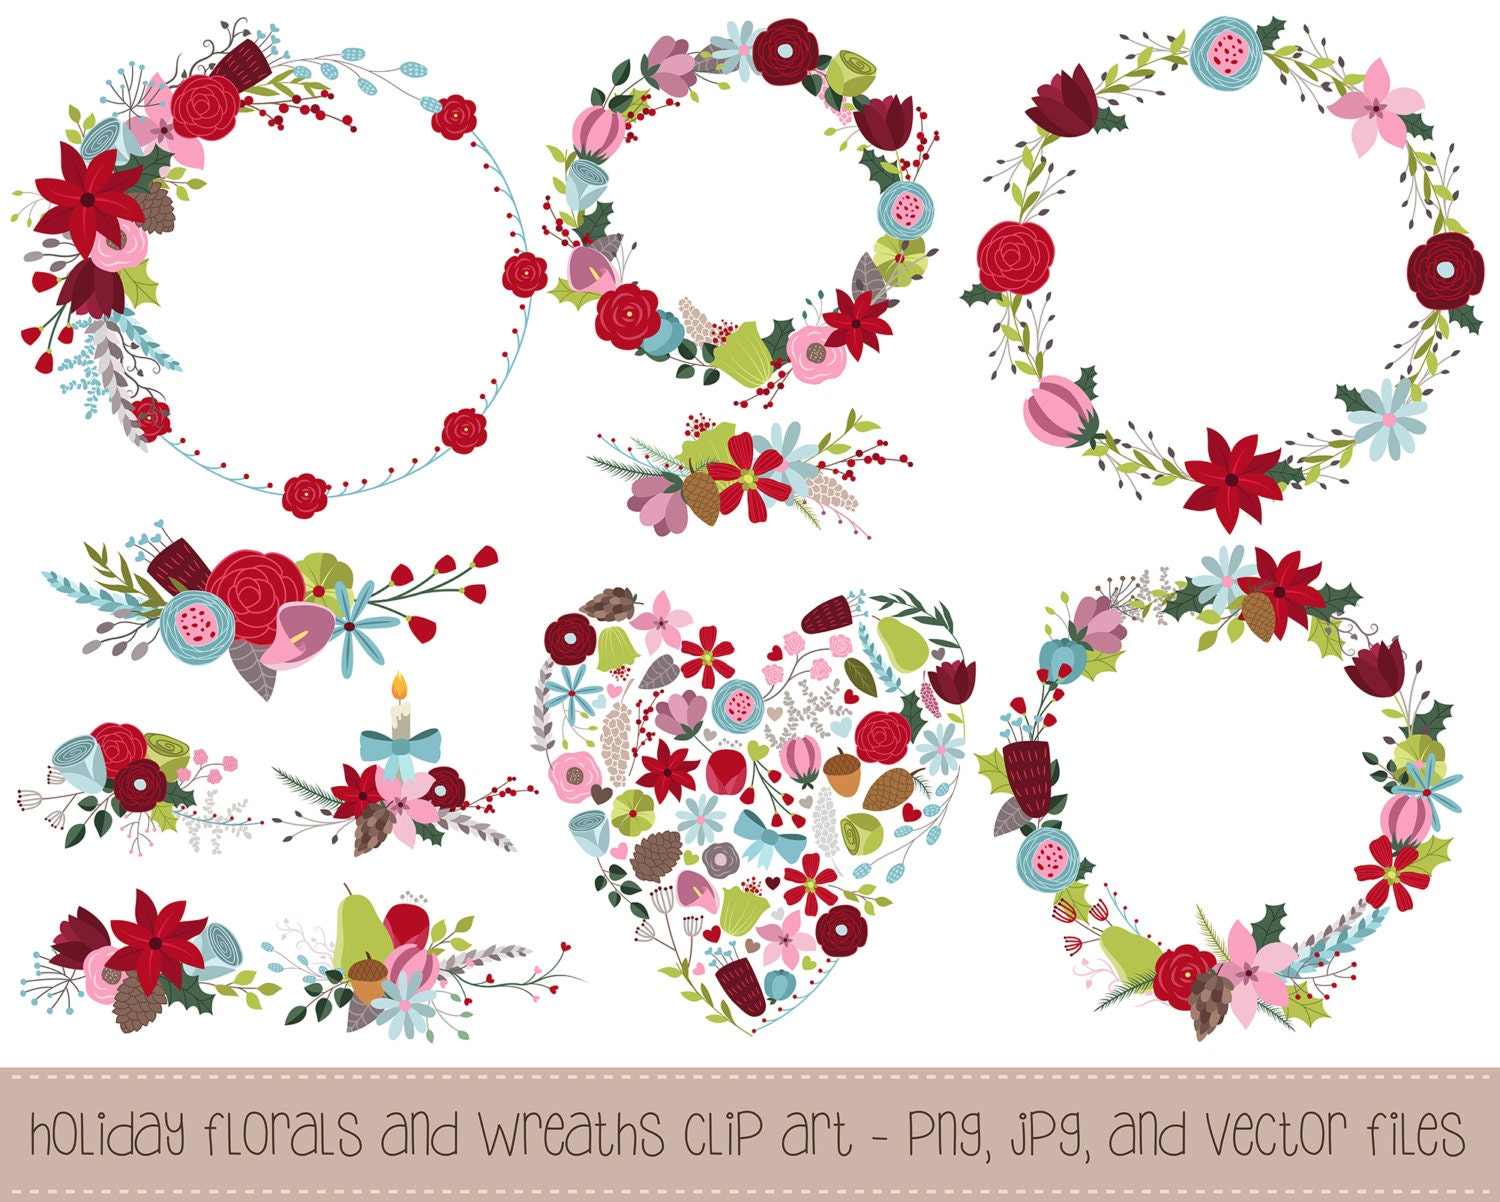 Winter Florals and Holiday Wreaths Clipart 11 Hand Drawn